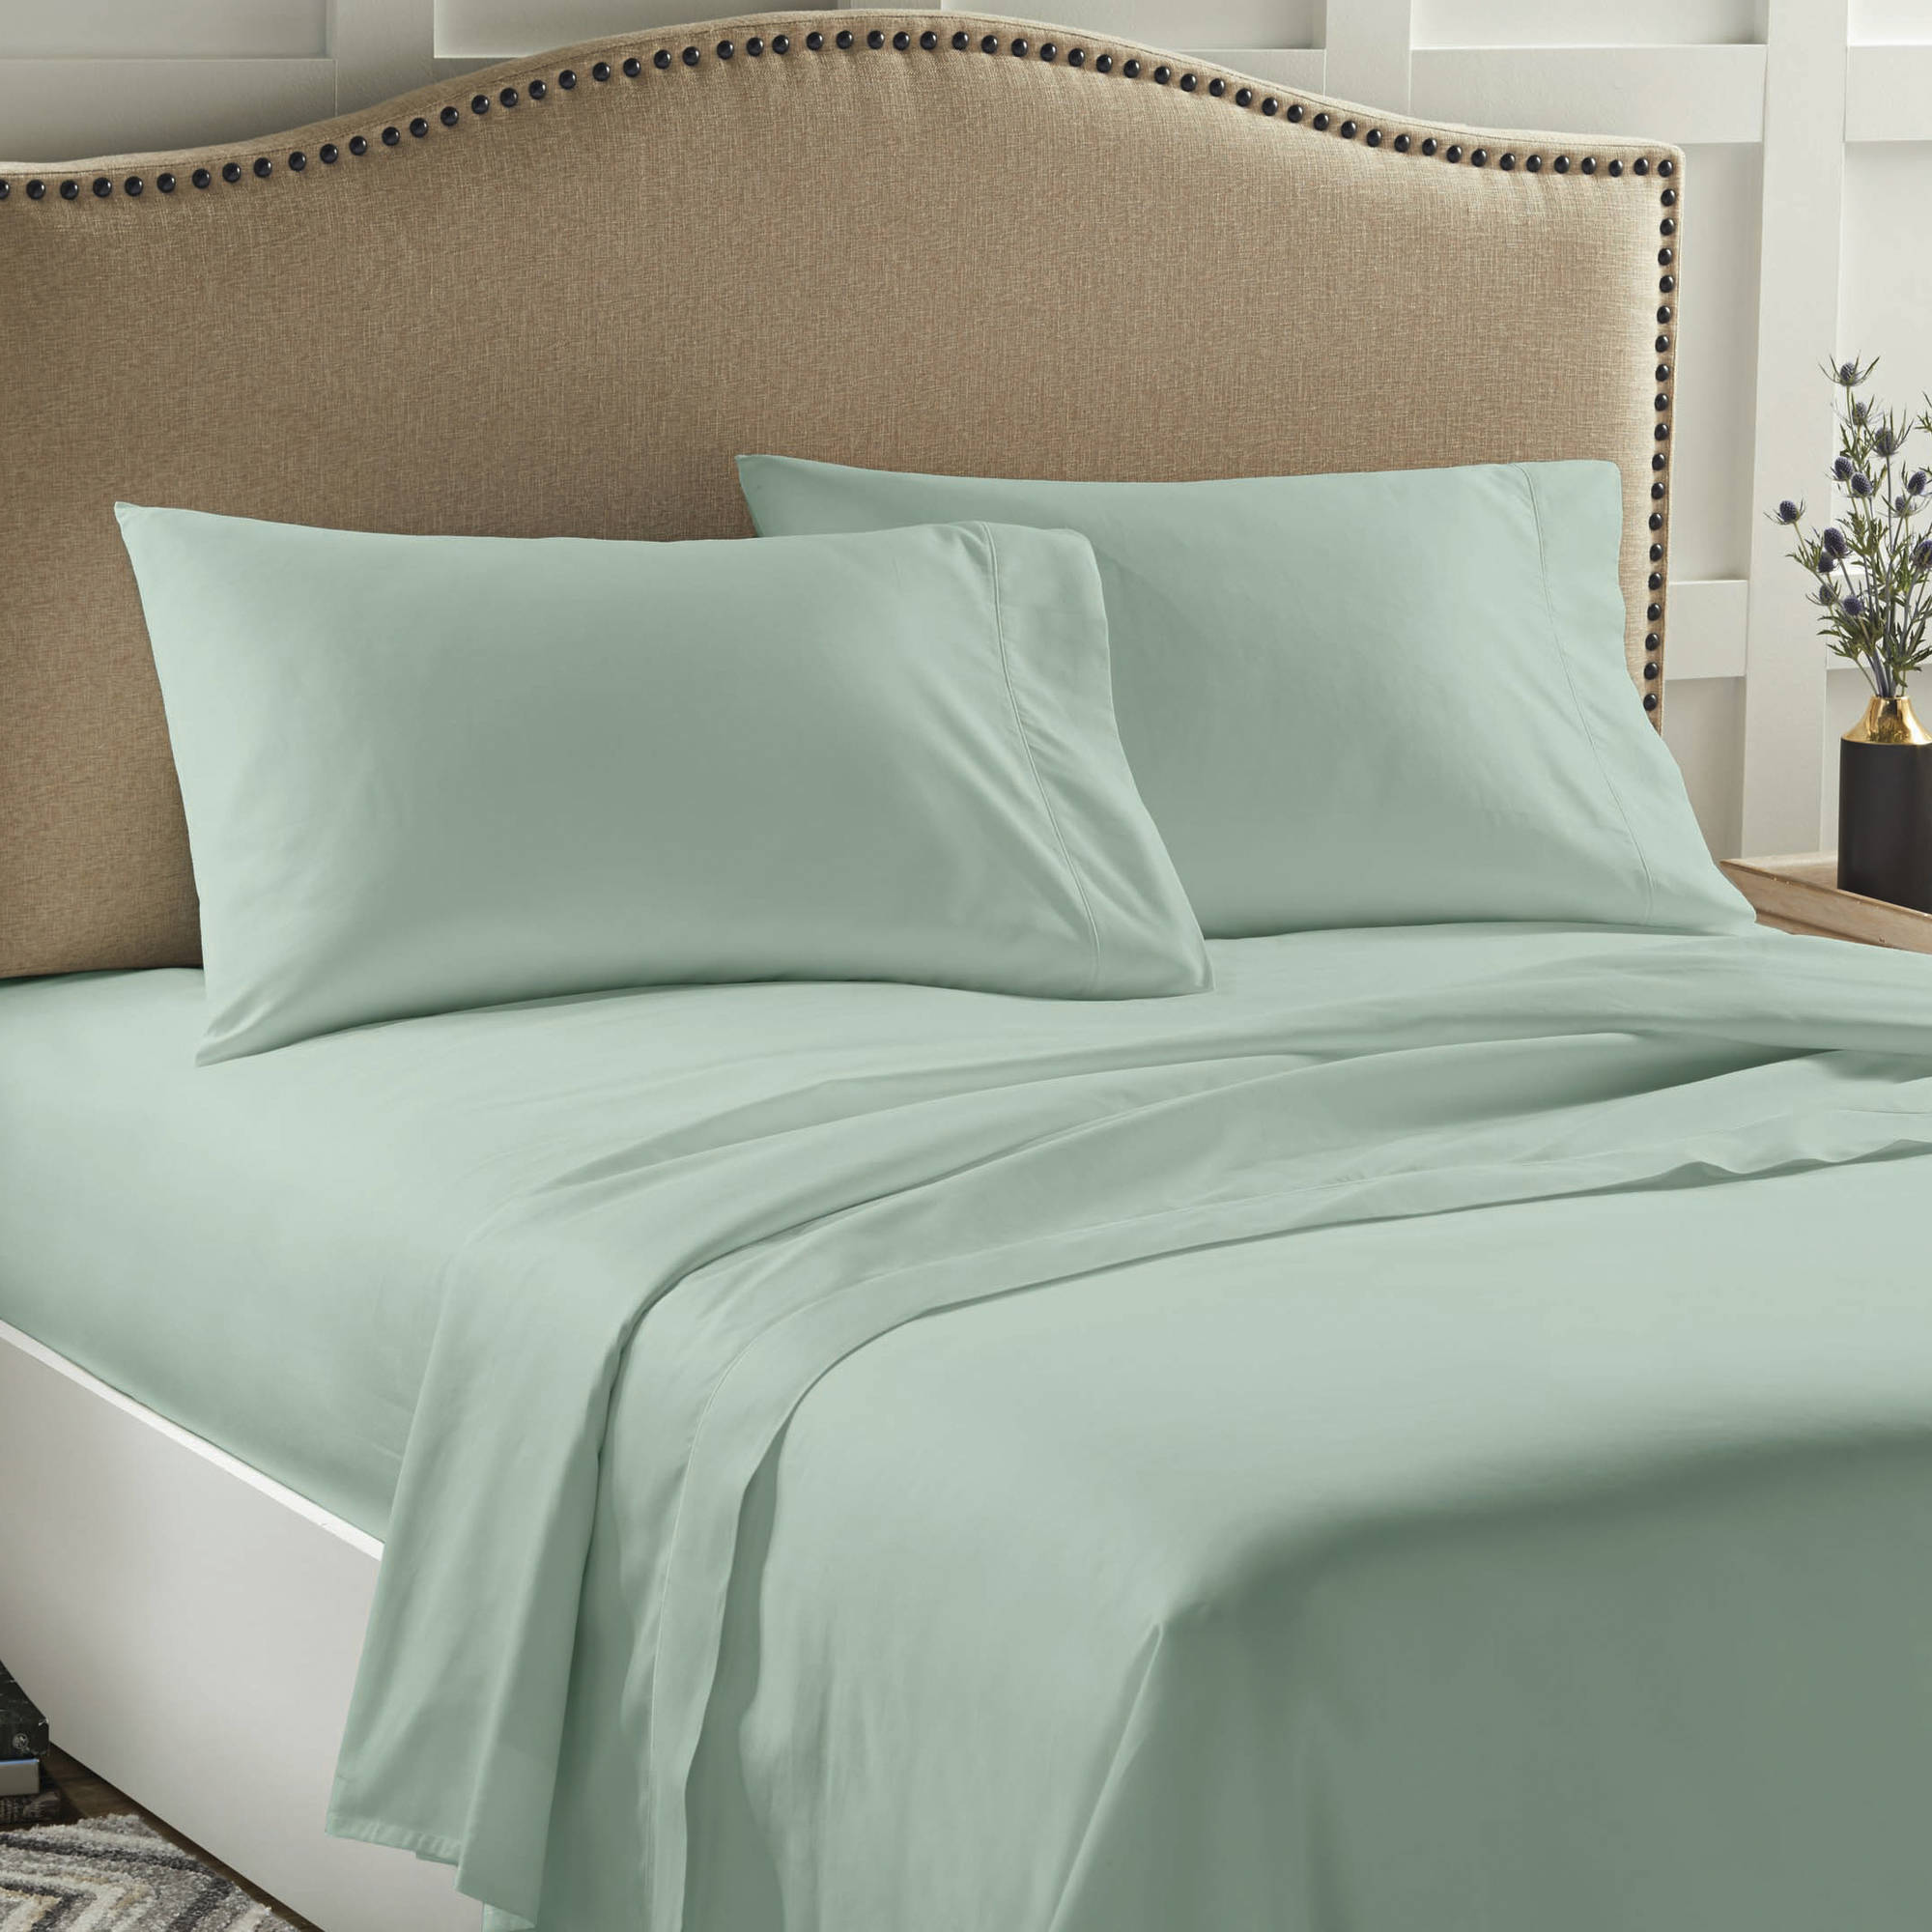 Better Homes & Gardens 400 Thread Count Performance Solid Bed Sheet Set, 1 Each